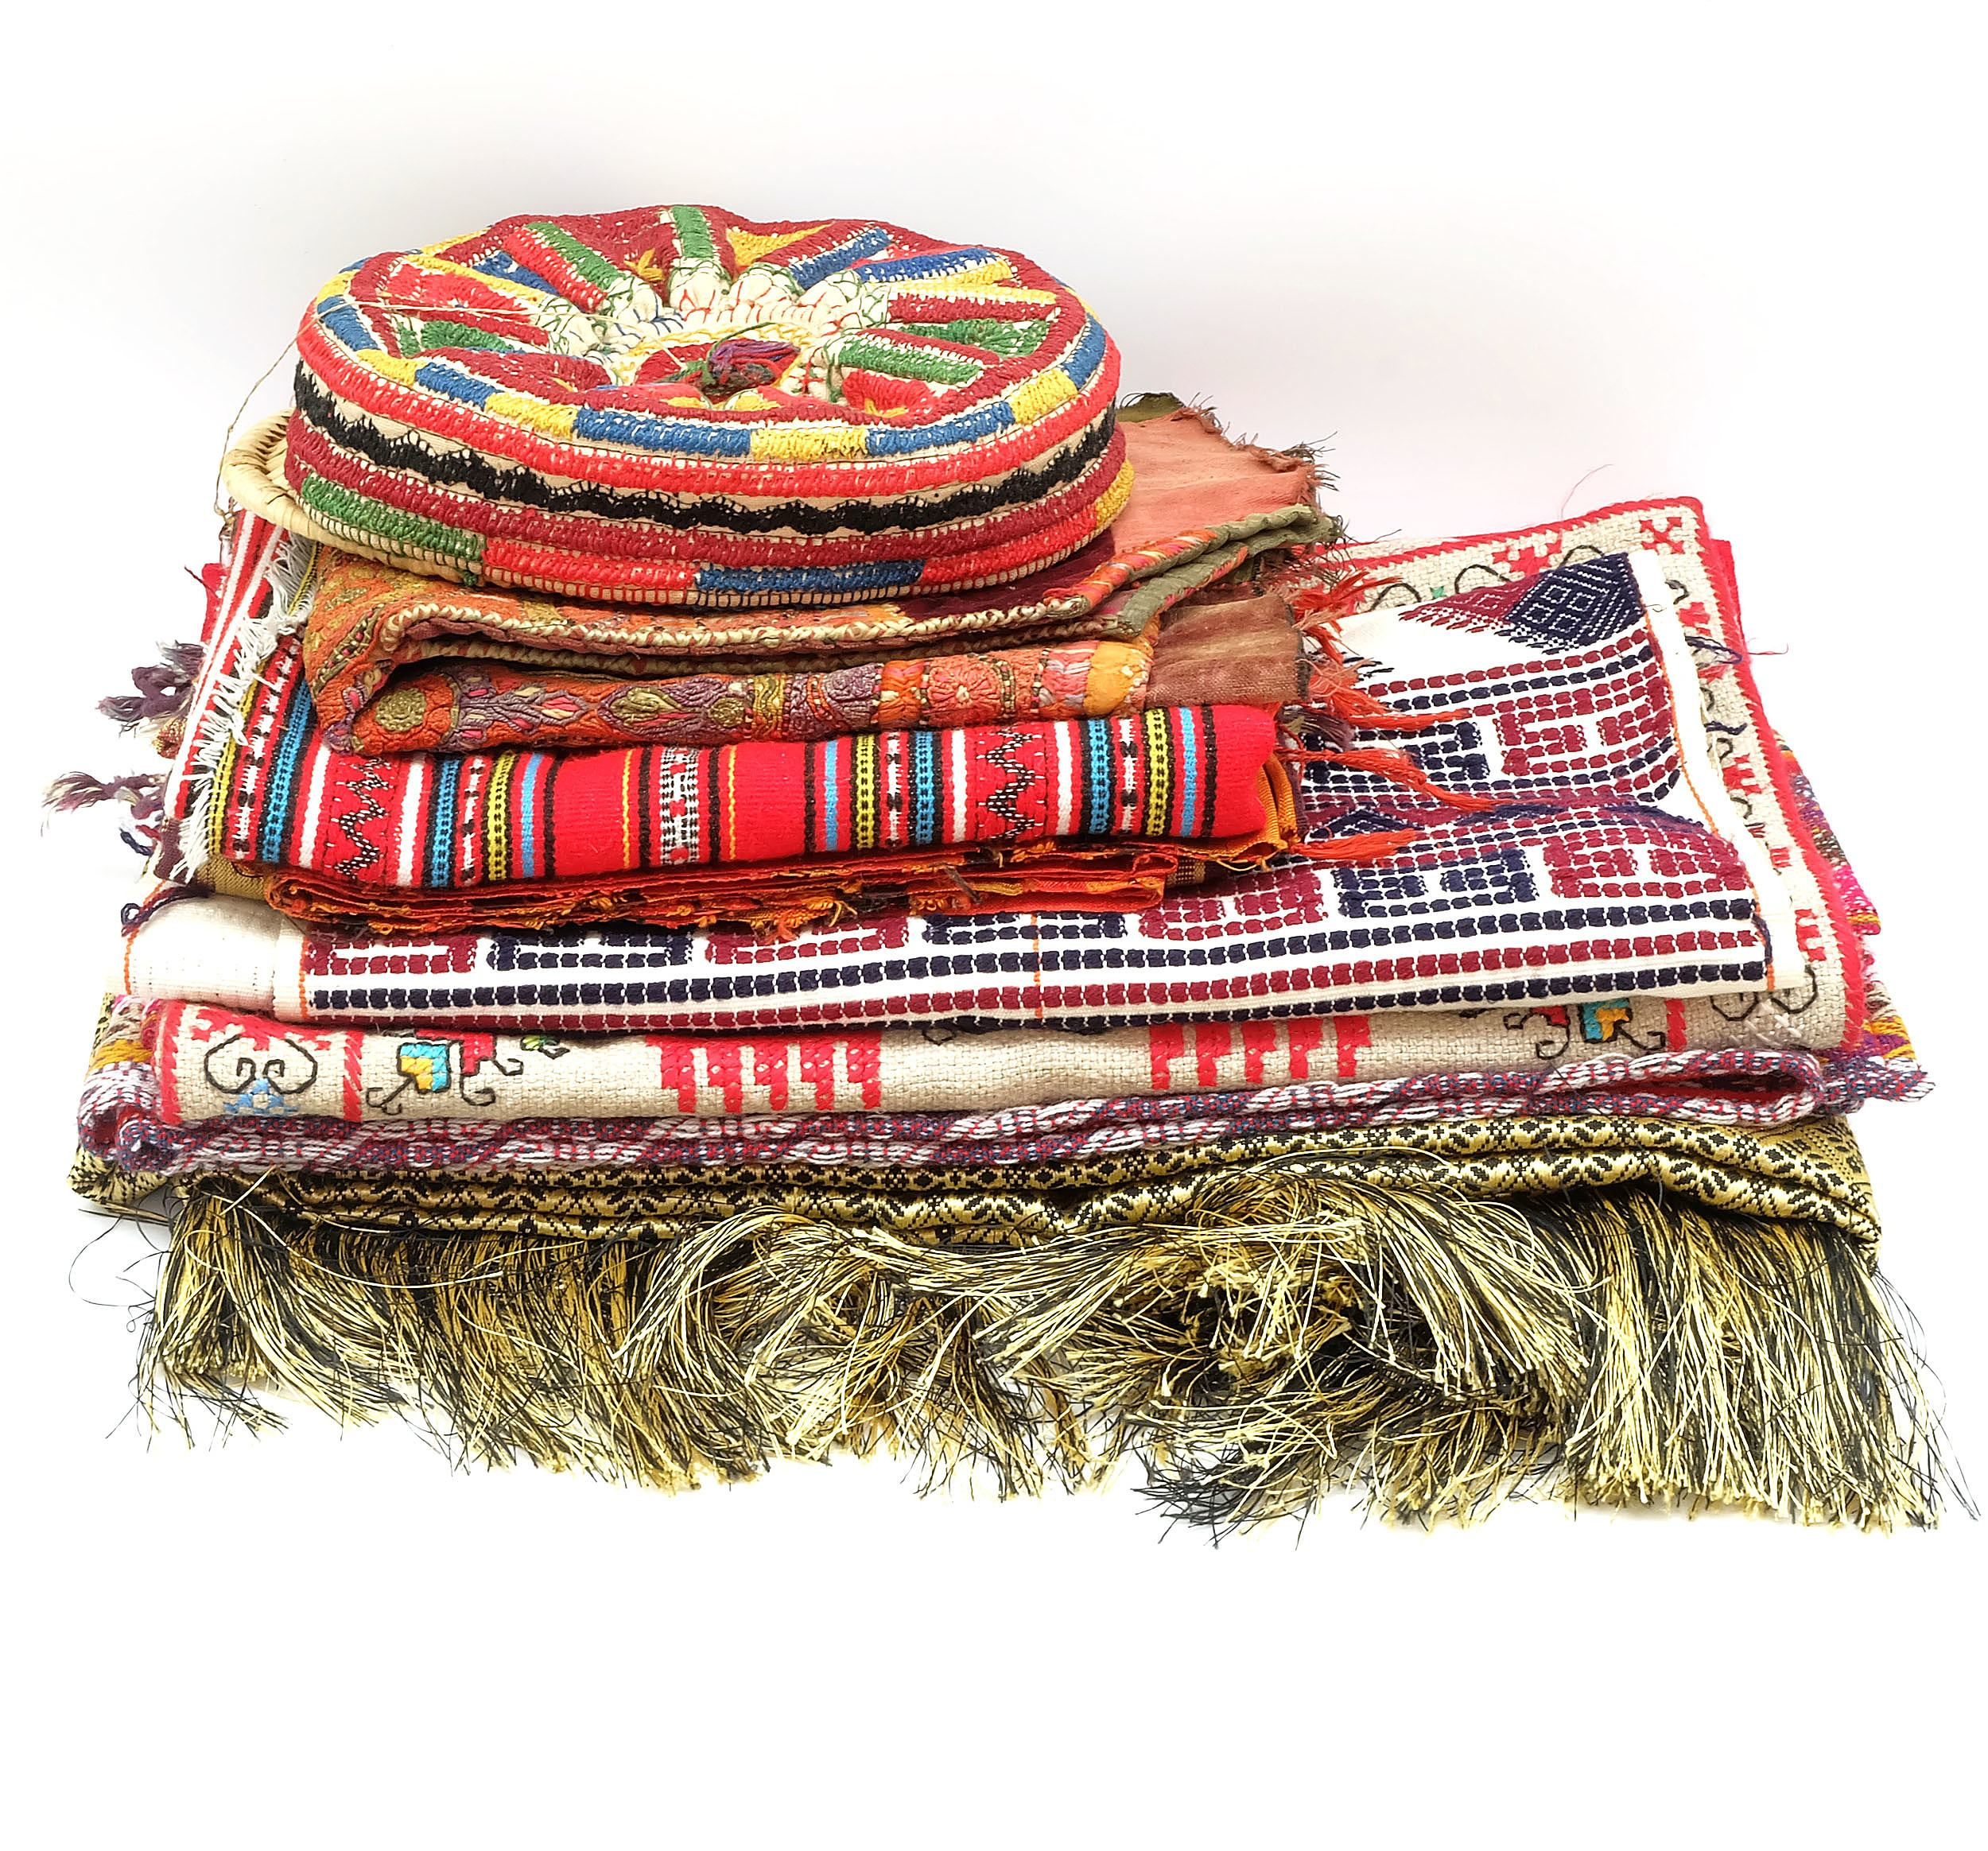 'Group of Middled Eastern Textiles Including a Taqiyah  '